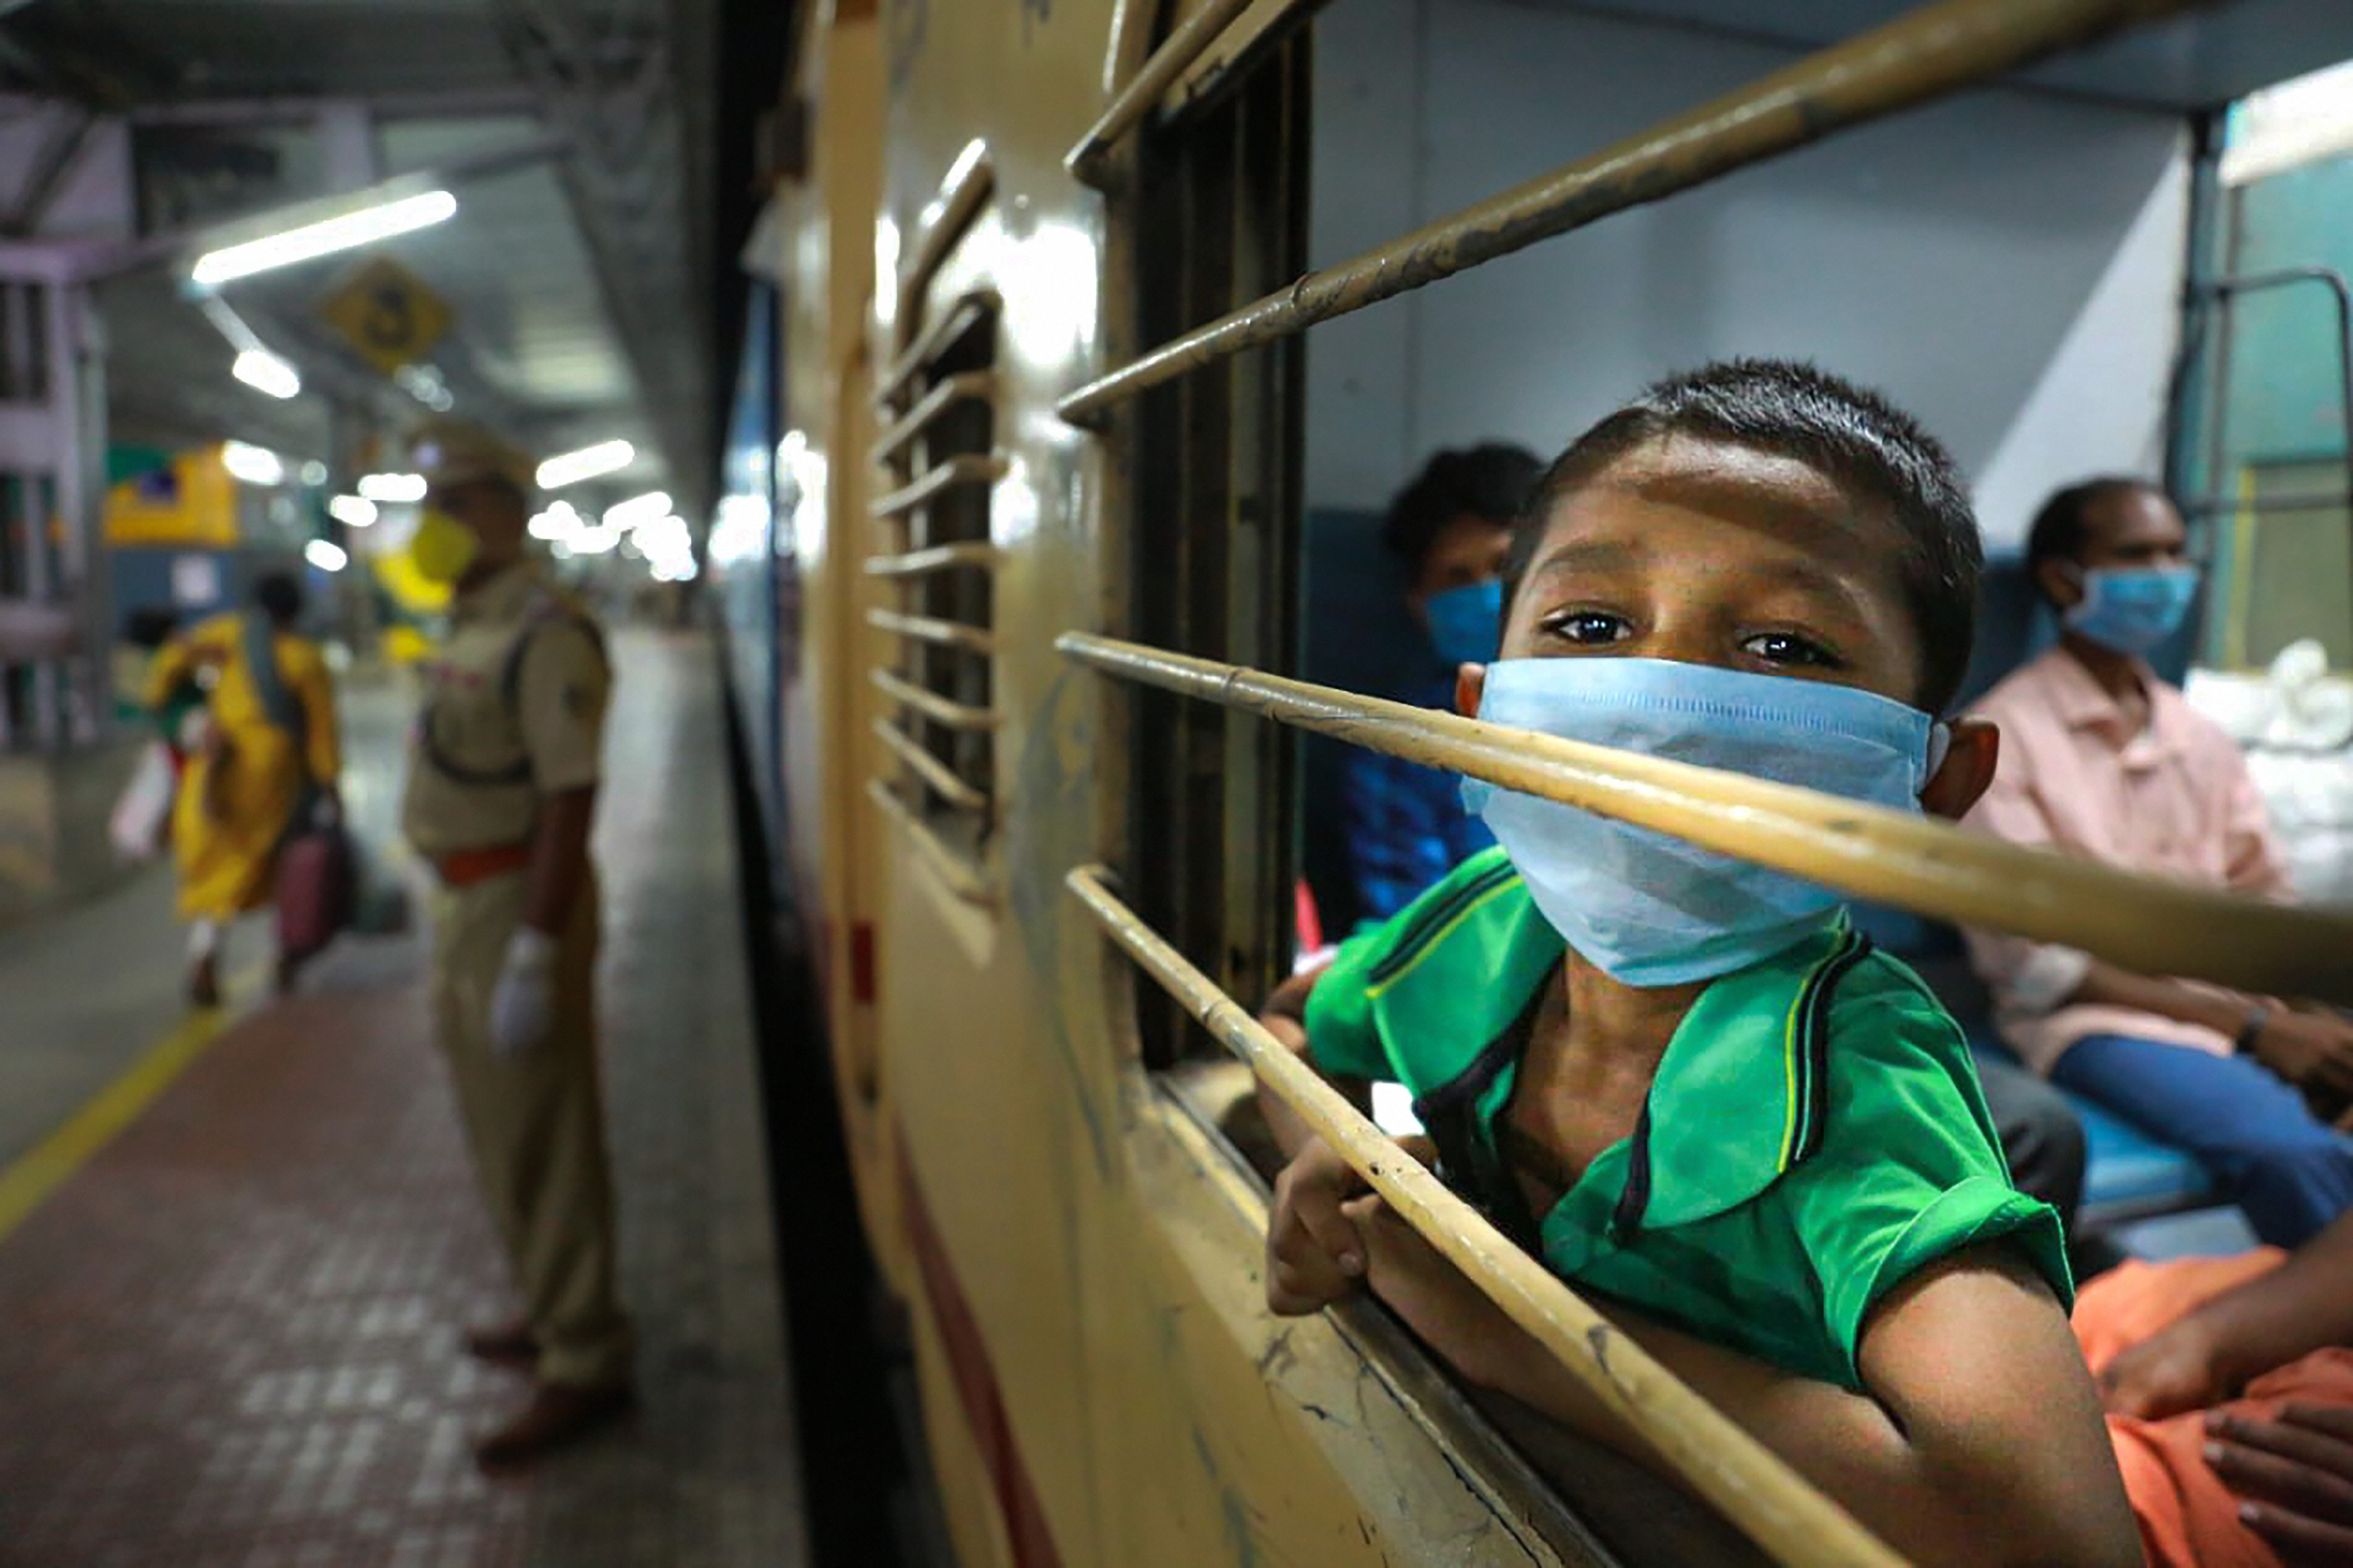 Migrants on board a special train for Bhubaneswar to reach their native places, amid ongoing COVID-19 lockdown